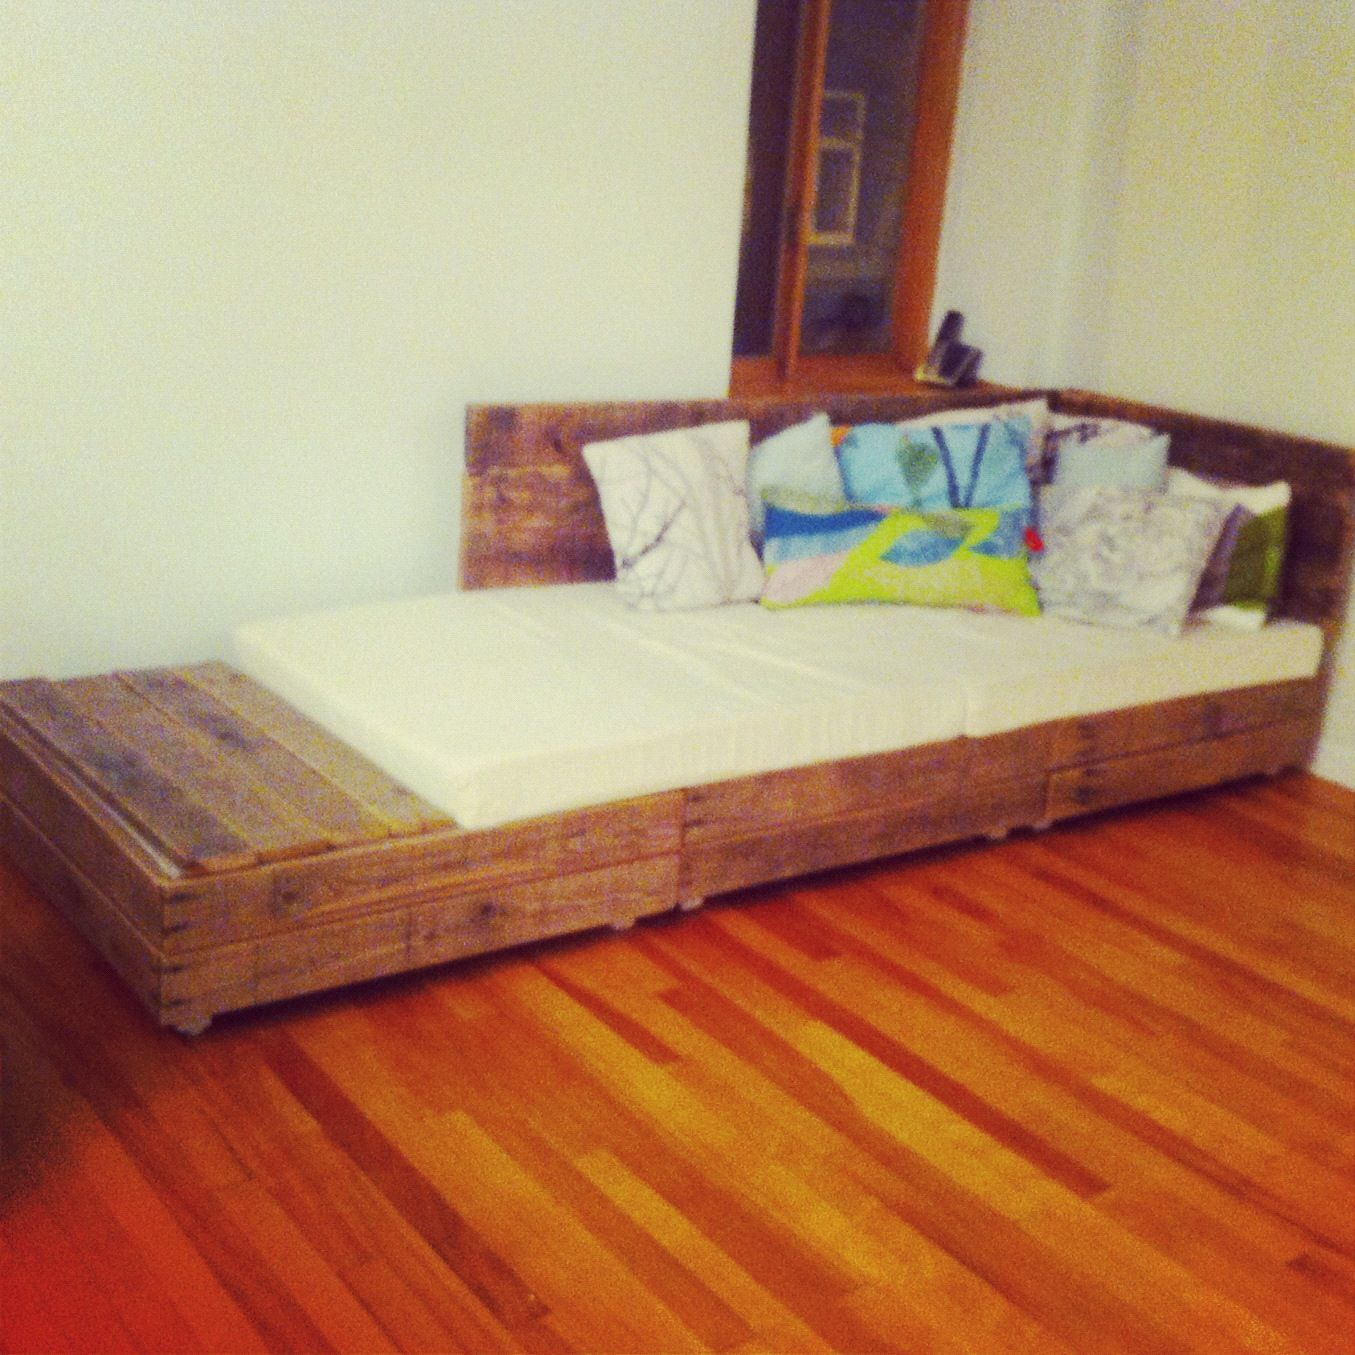 Diy Pallet Couch Sofa Bed Upcycled Salvaged Wood Perfect